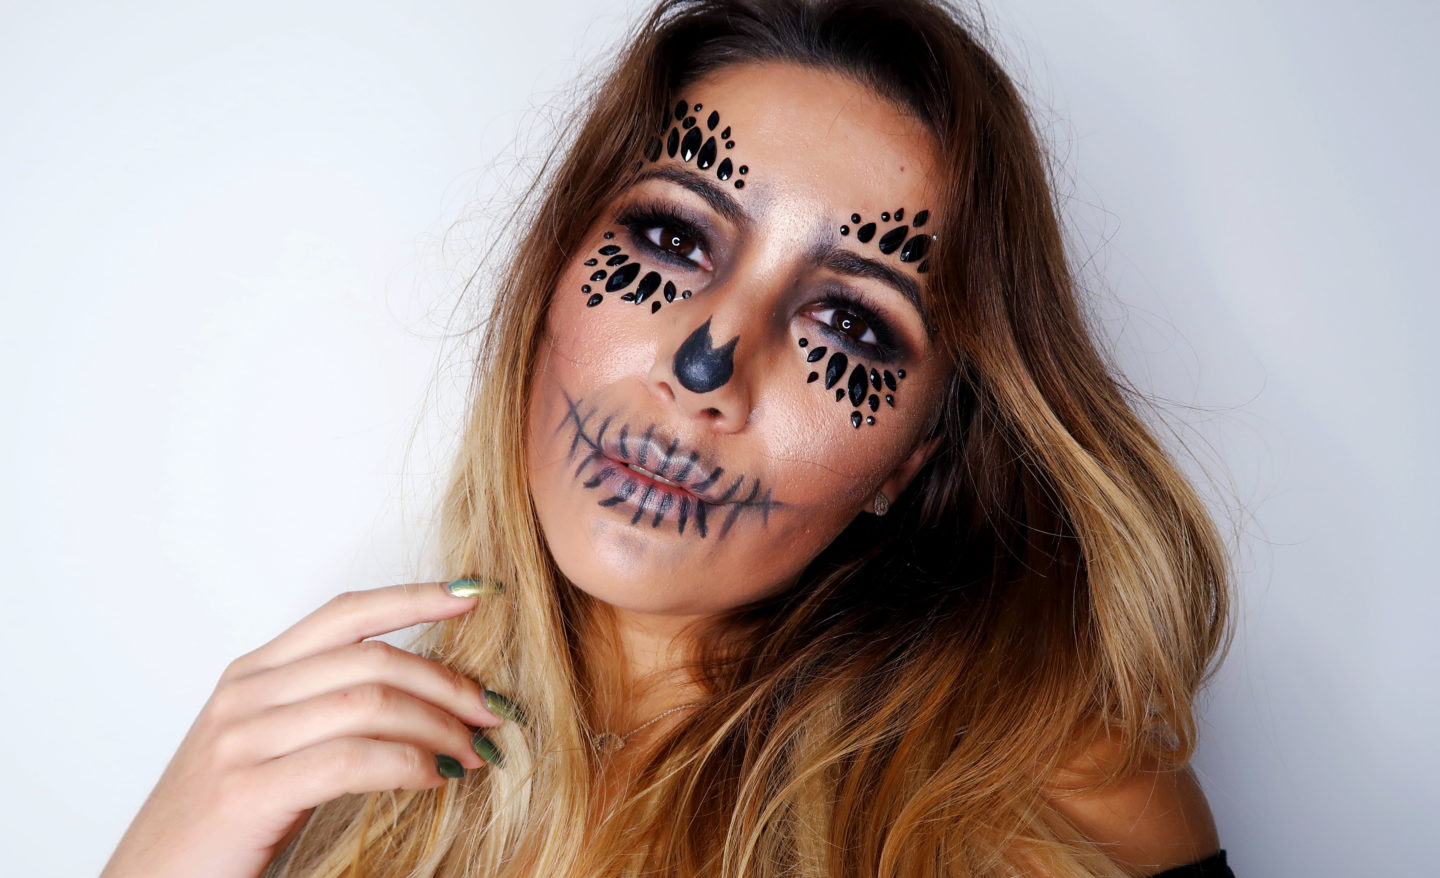 HALLOWEEN HOW TO: EASY SKULL MAKE UP